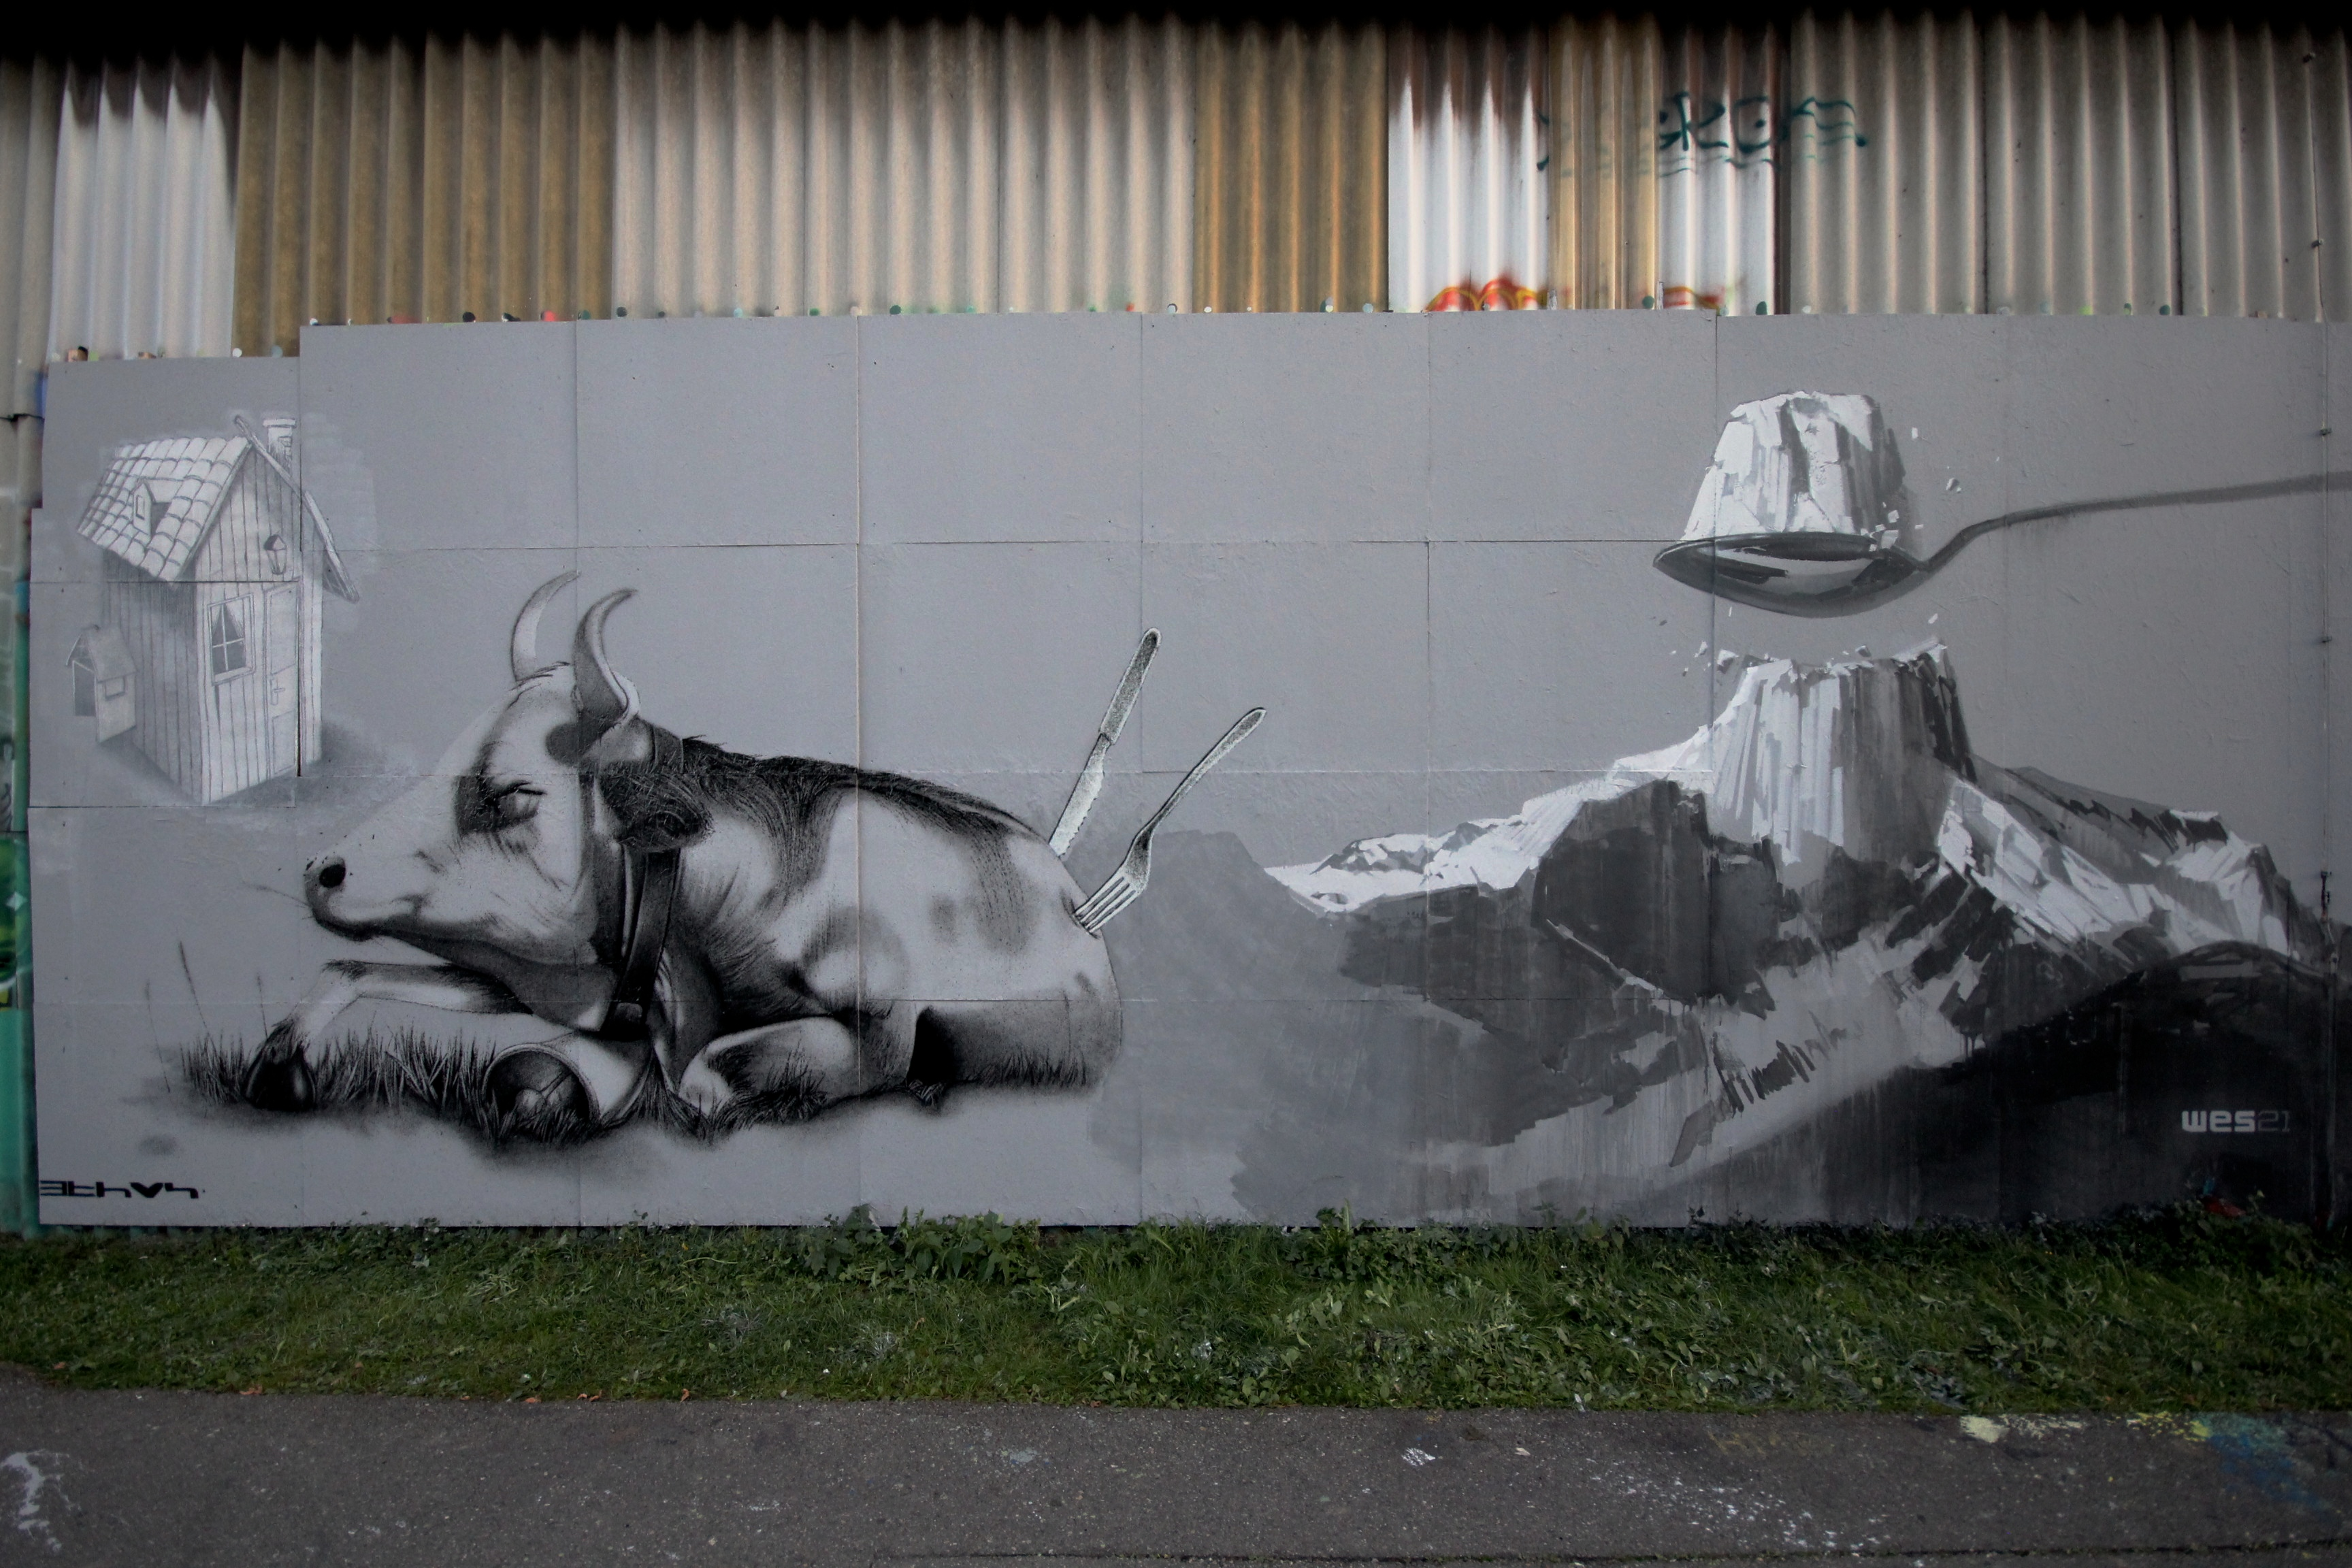 Two new murals from Ethos in Switzerland and USA Artes & contextos Ethos 2